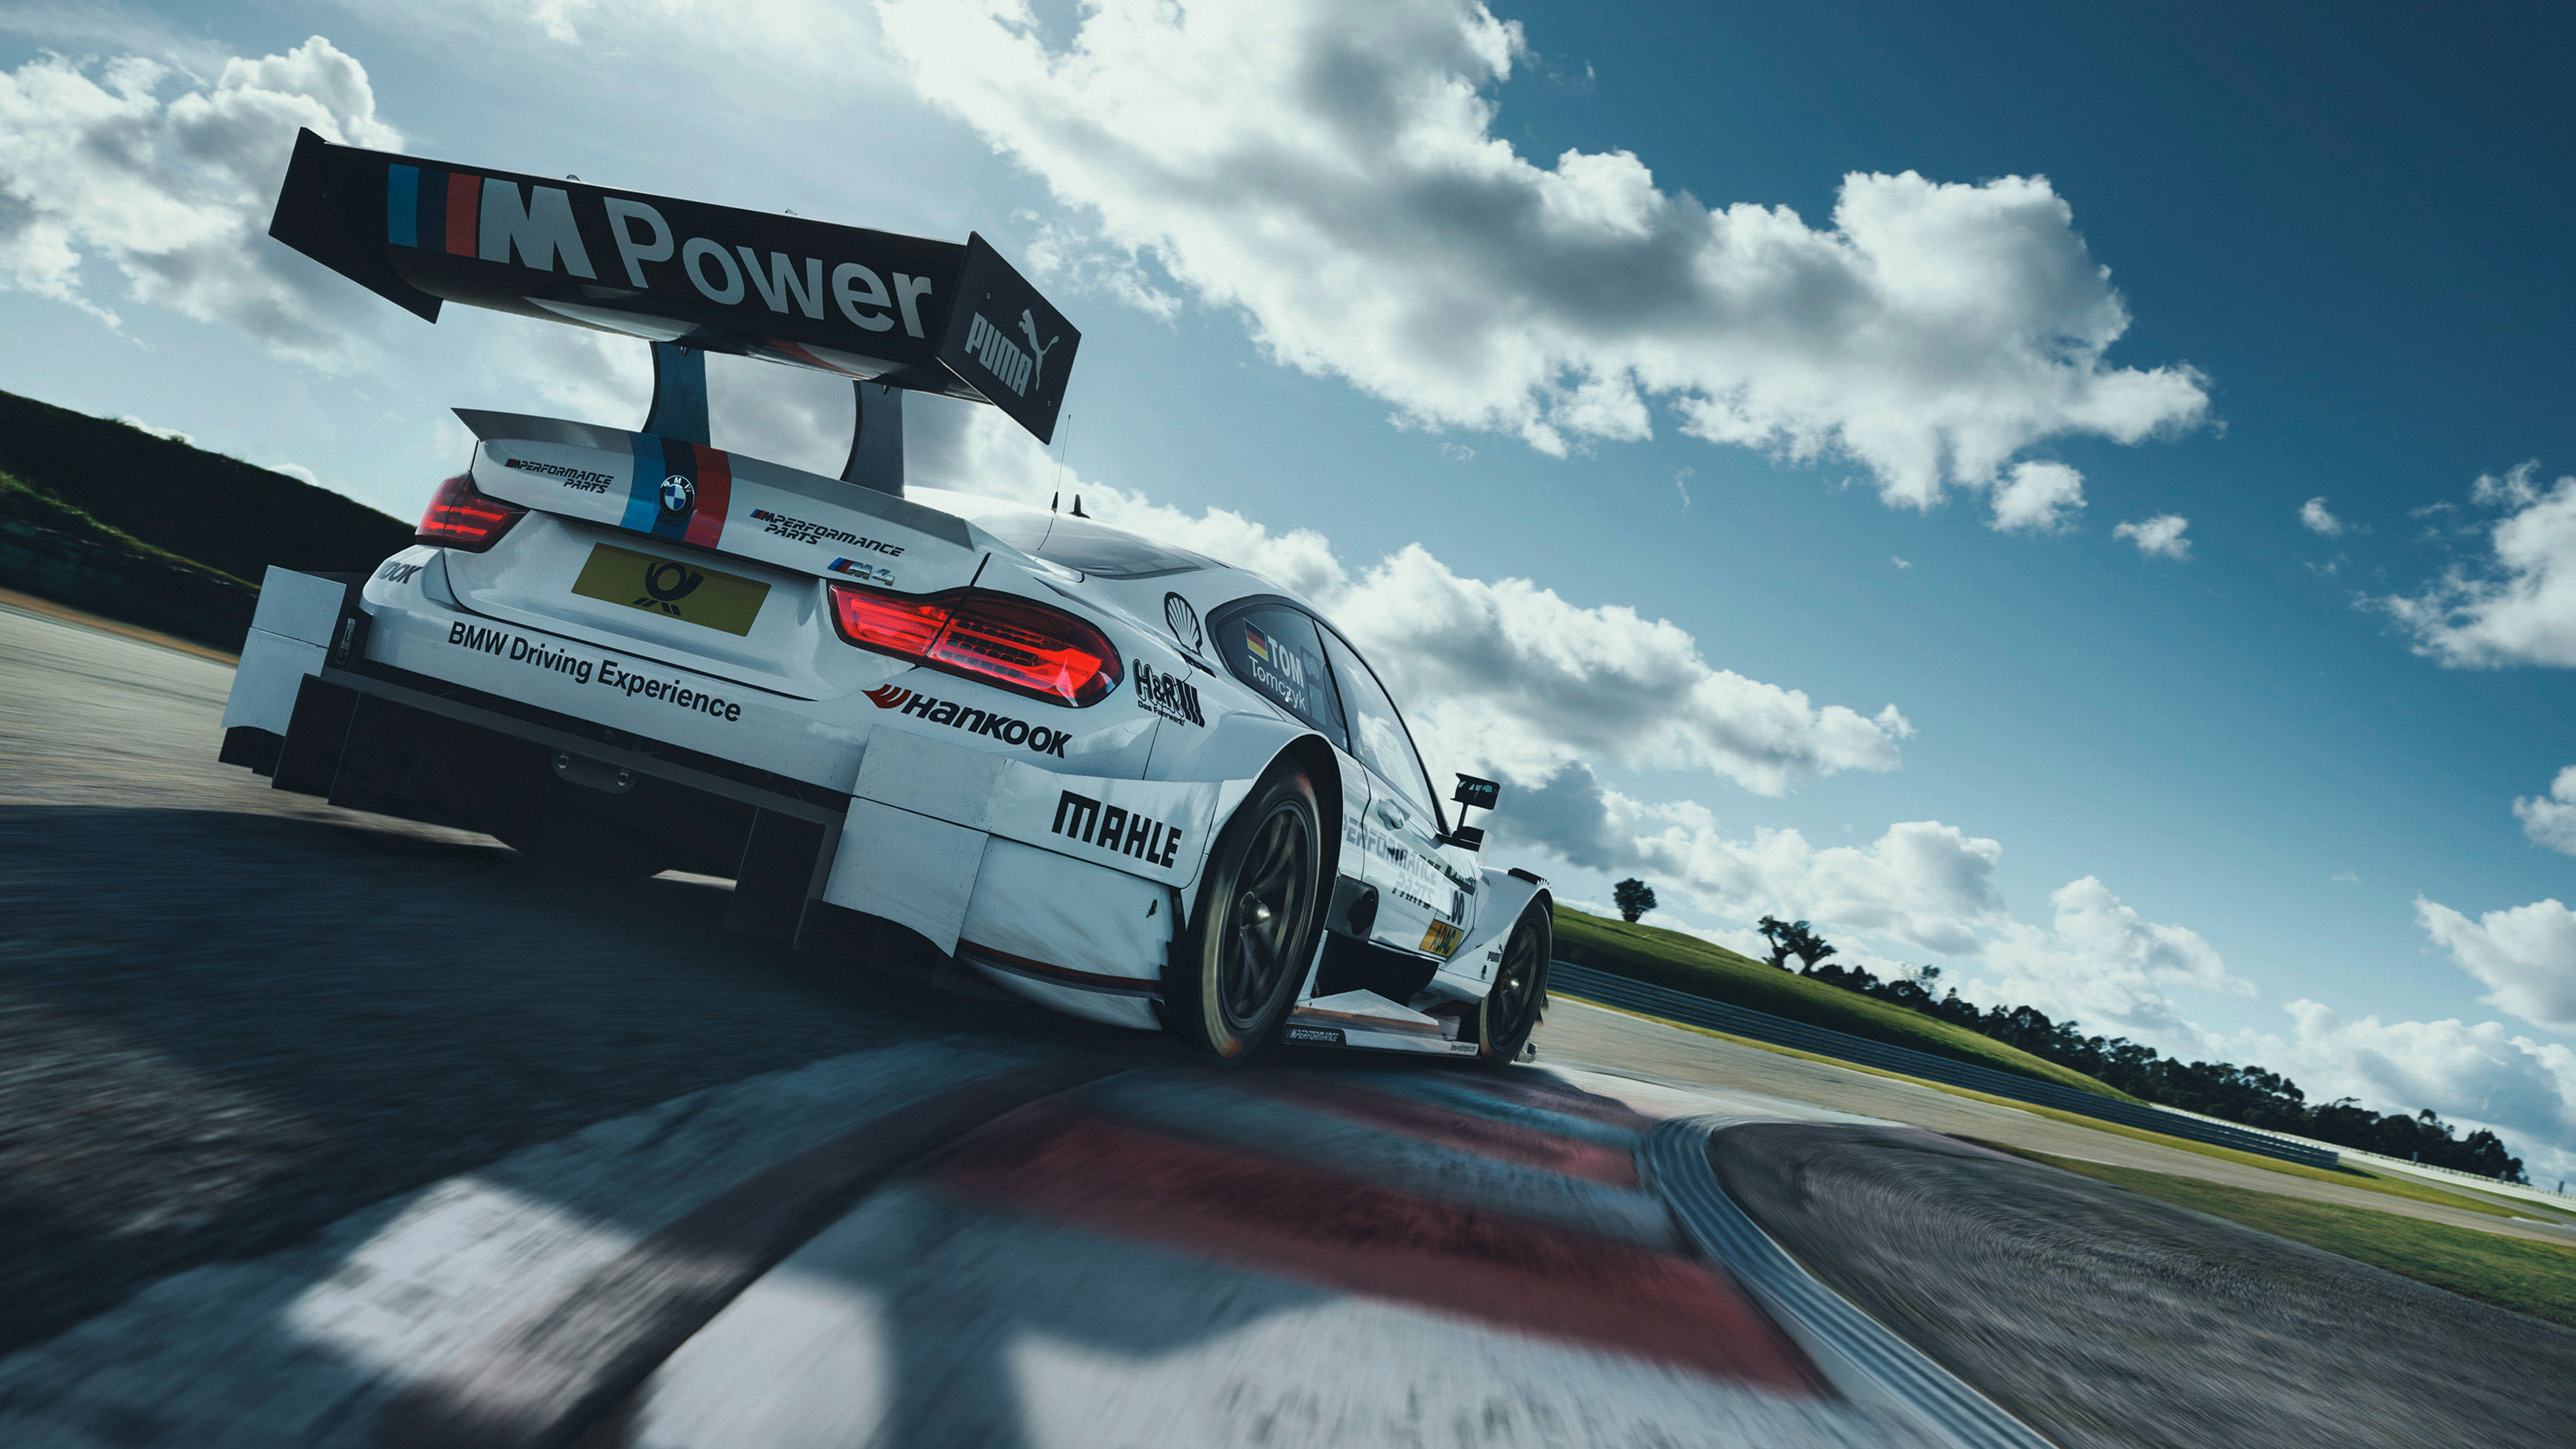 Bmw M4 Dtm Racing Track Wallpaper Hd Car Wallpapers Id 8098